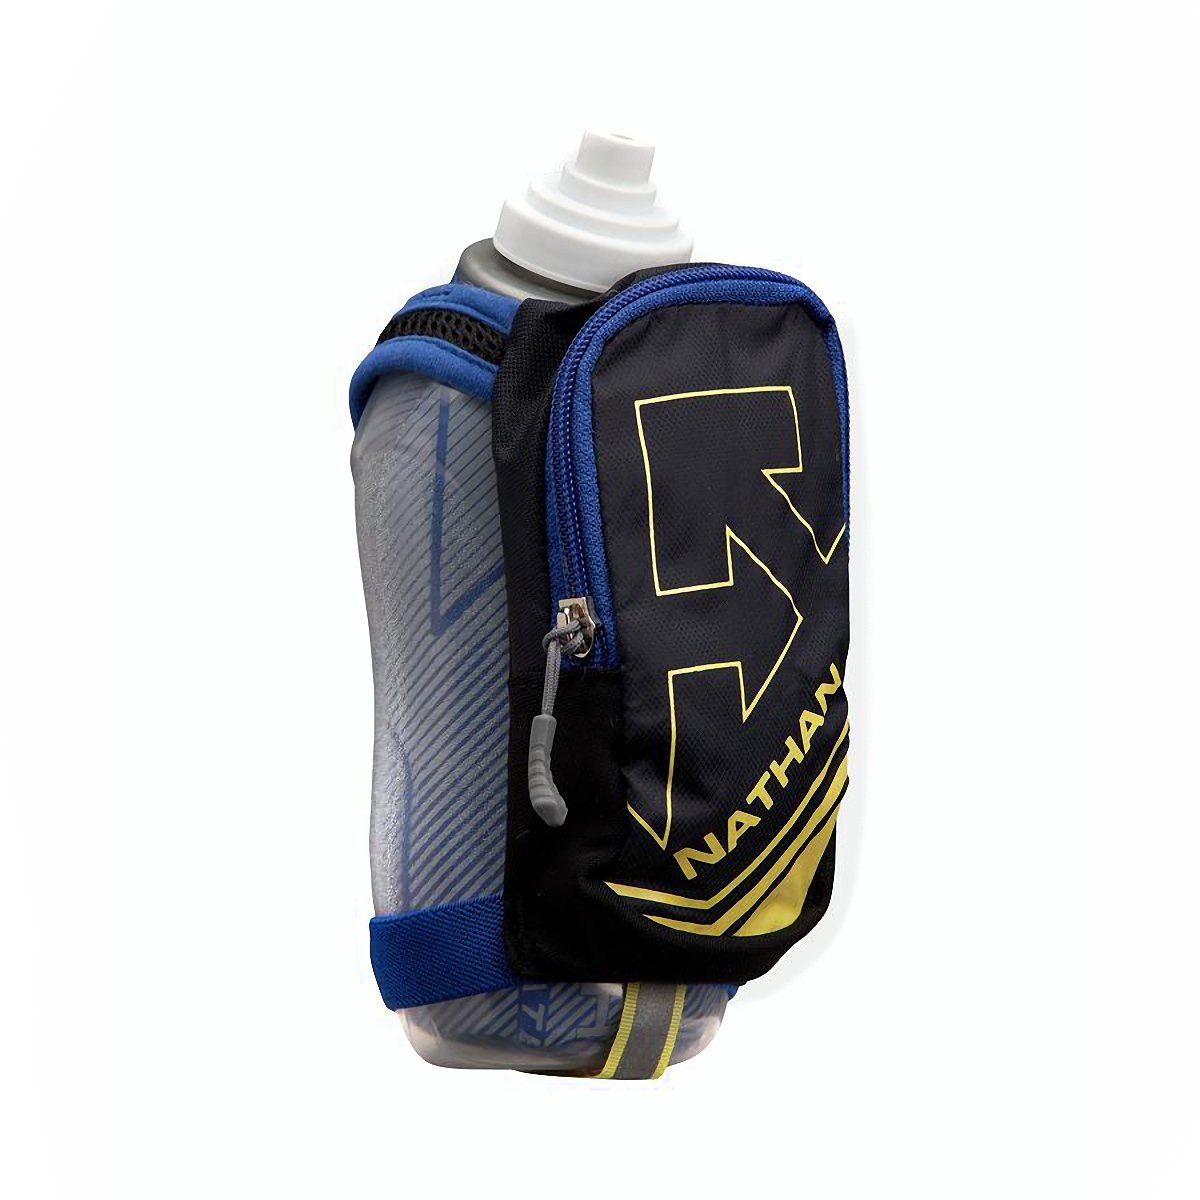 Nathan SpeedDraw Plus Insulated Flask - Color: Black - Size: One Size, Black/Yellow/Grey, large, image 1